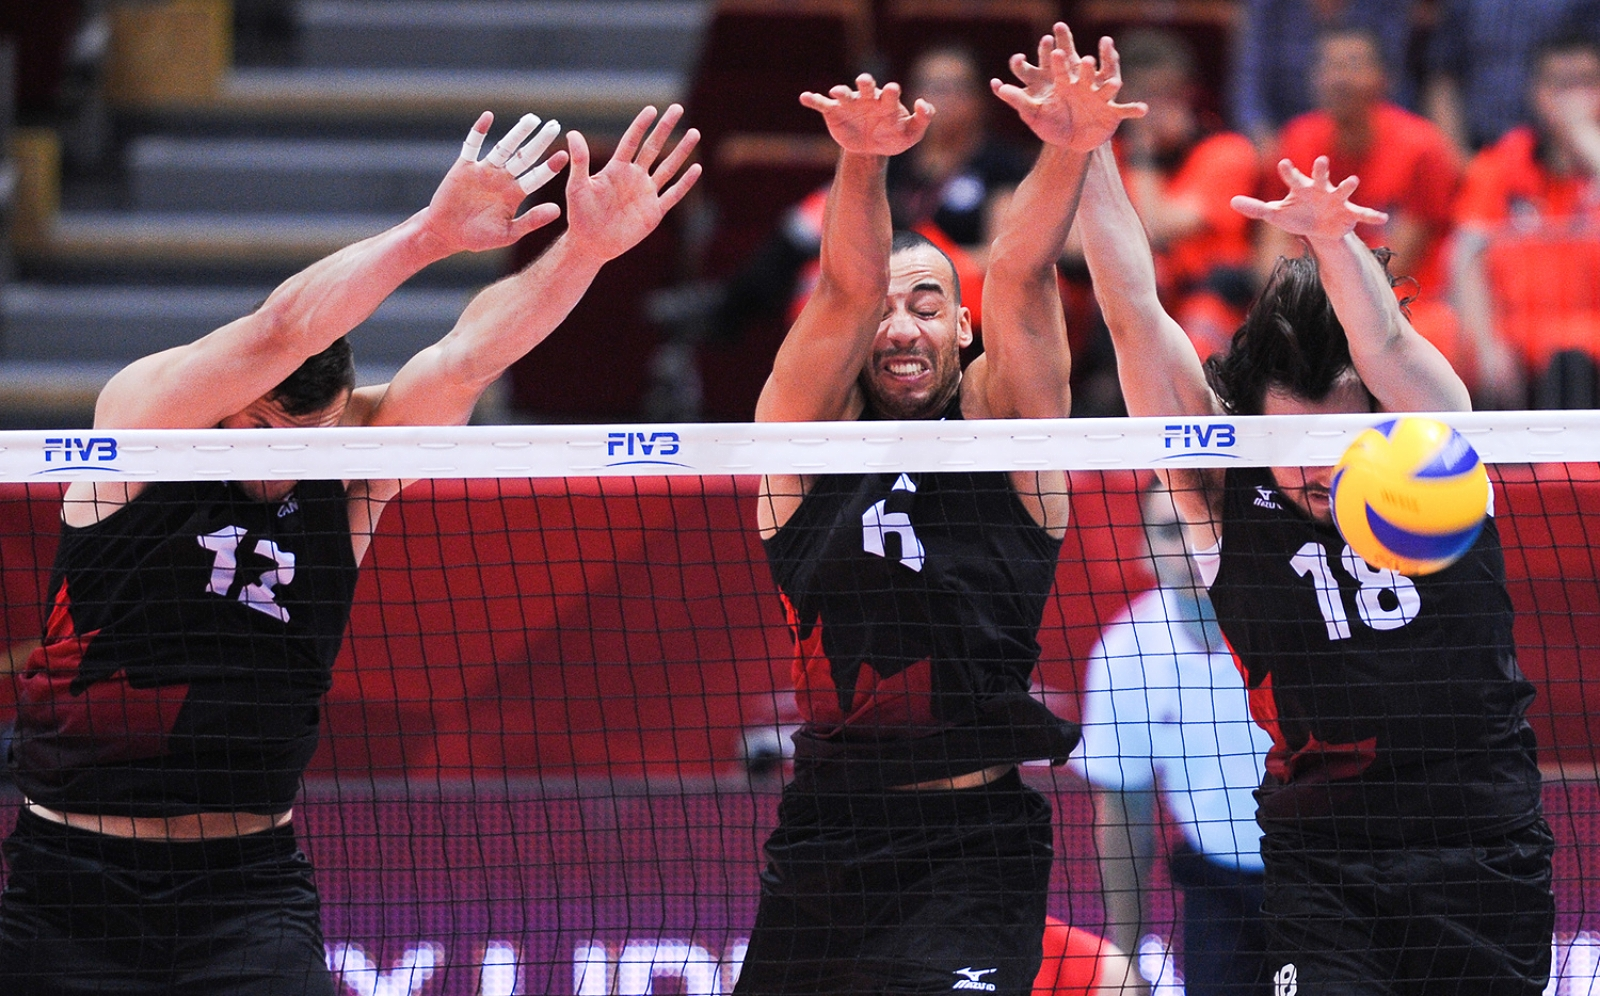 Canada's blocking was devastating, shutting down Egypt nine times while Gavin Schmitt went 13-for-19 on route to a 3-0 win over Egypt this morning at the 2014 FIVB World Championships.